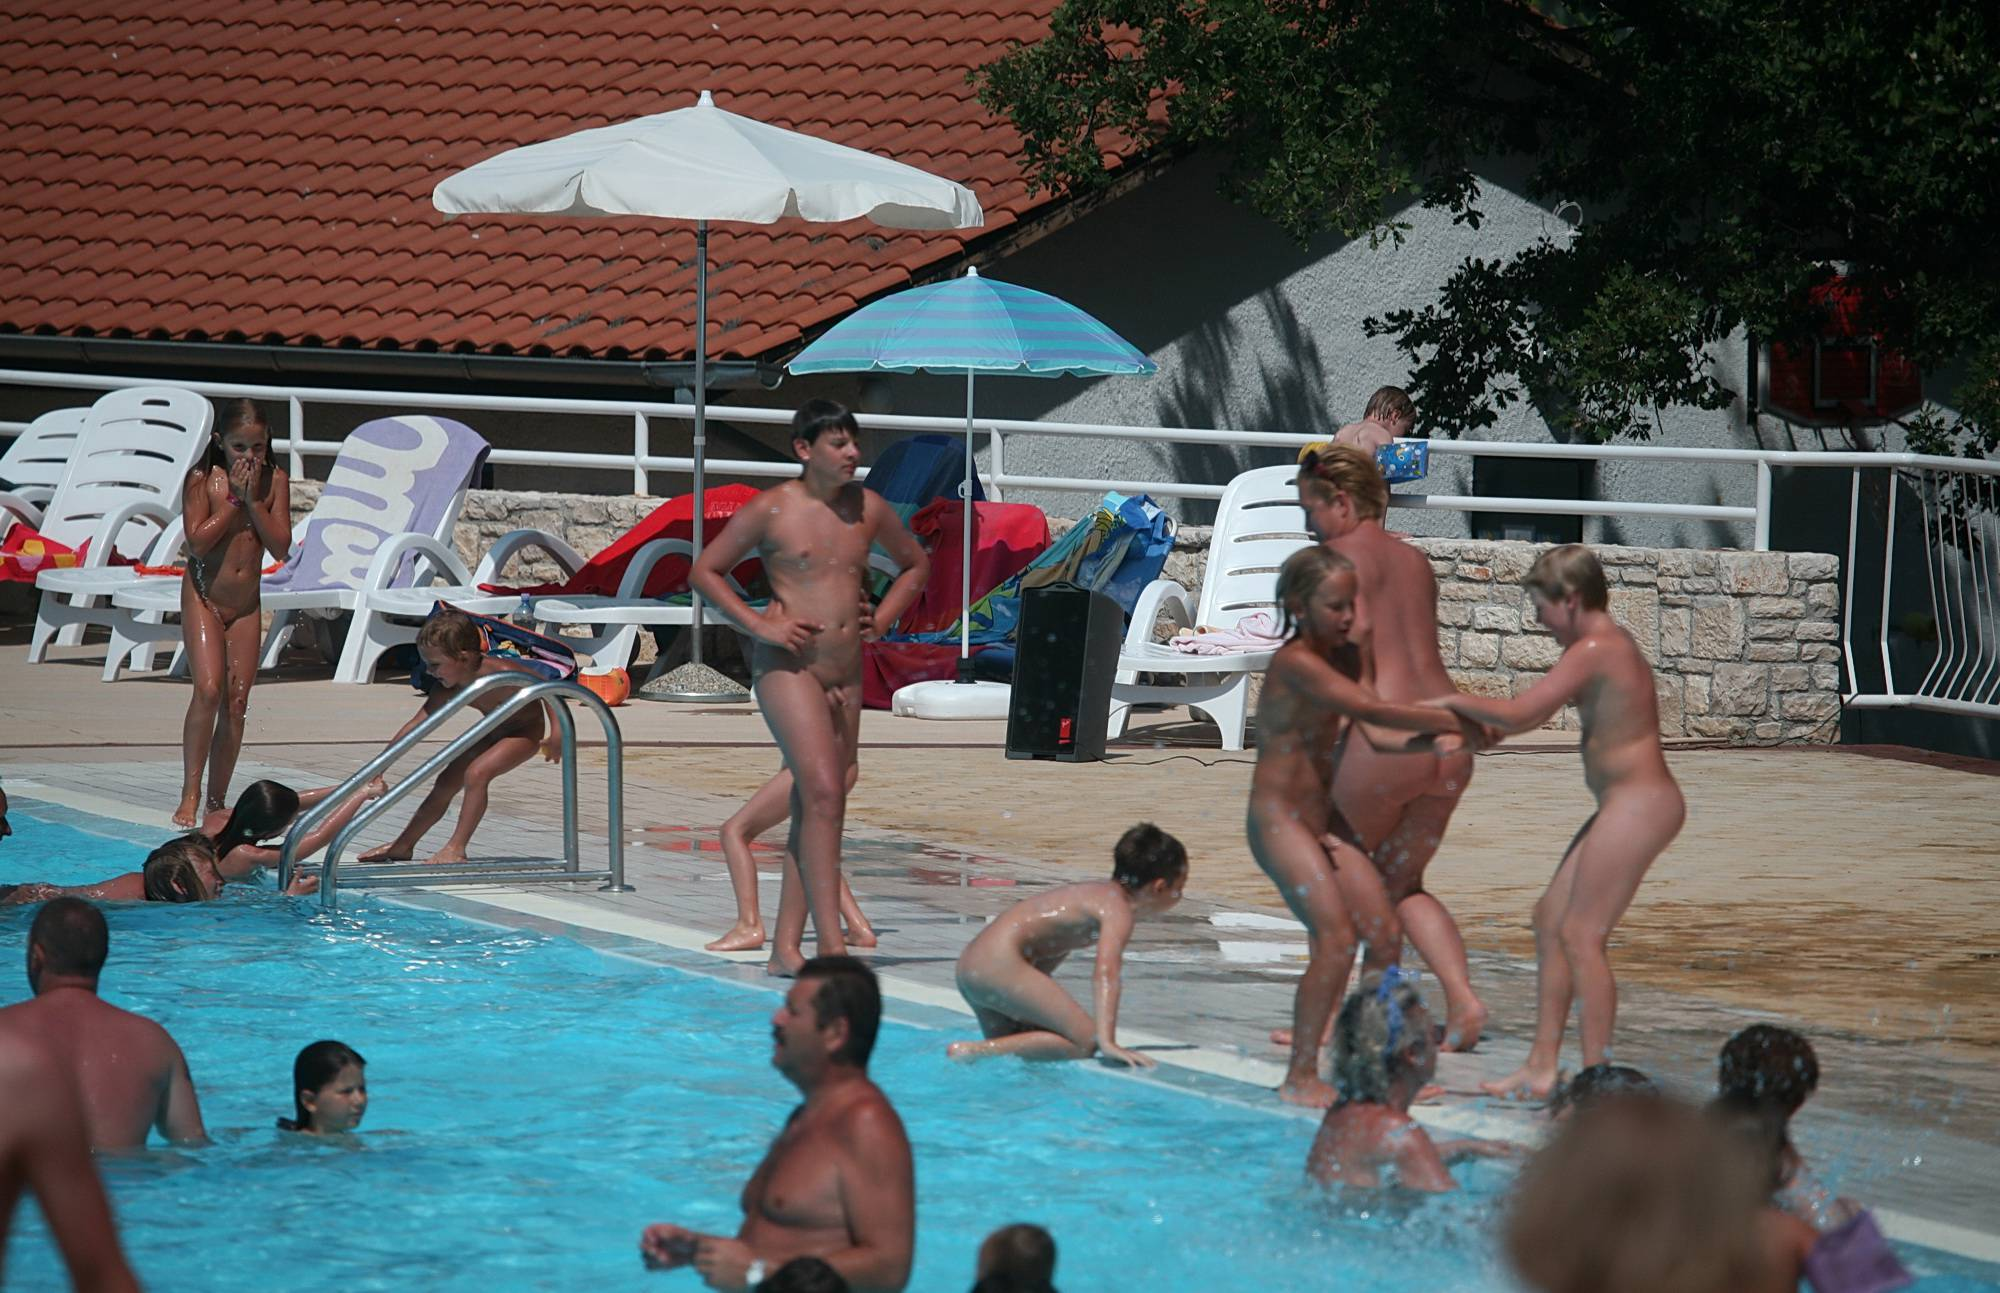 Nudist Gallery Drag and Drop in the Pool - 2